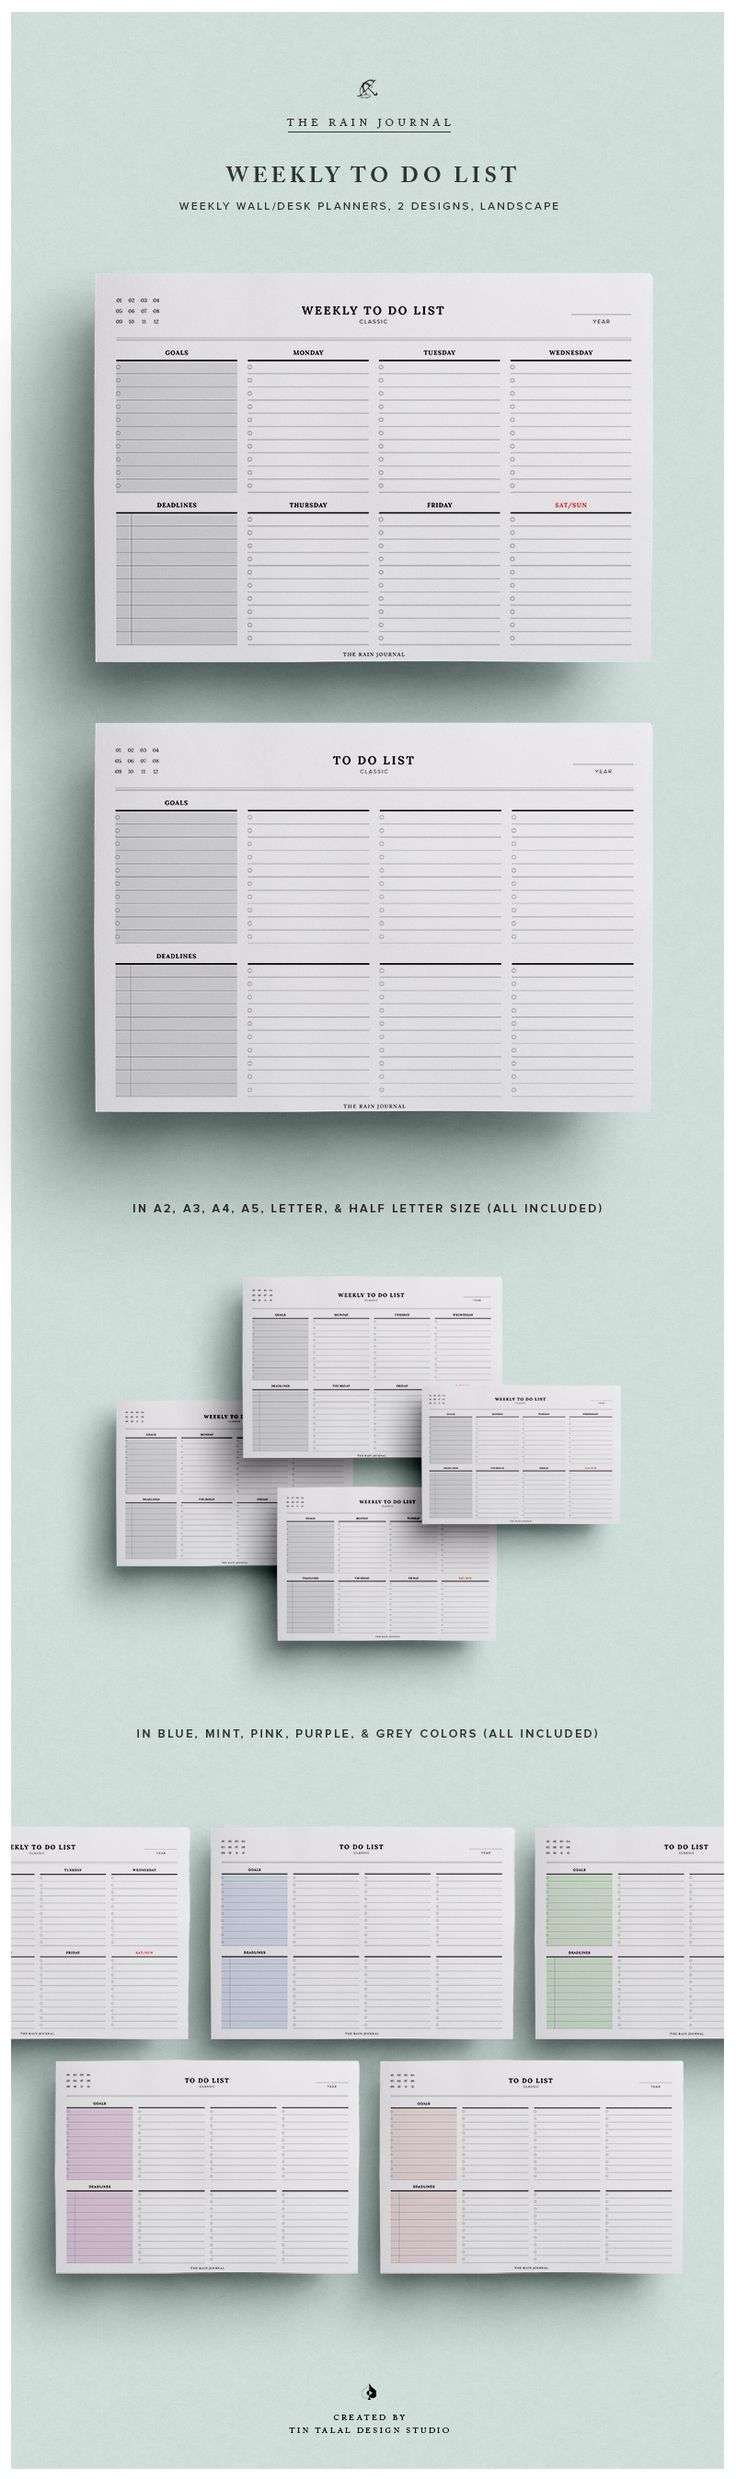 Weekly To Do List Planner - 5 Colors and 2 Designs included. In A4, A5, Letter & Half Letter size. Wall Planner, Desk Planner, DIY Planner, Planner Inserts, Planner Pages.